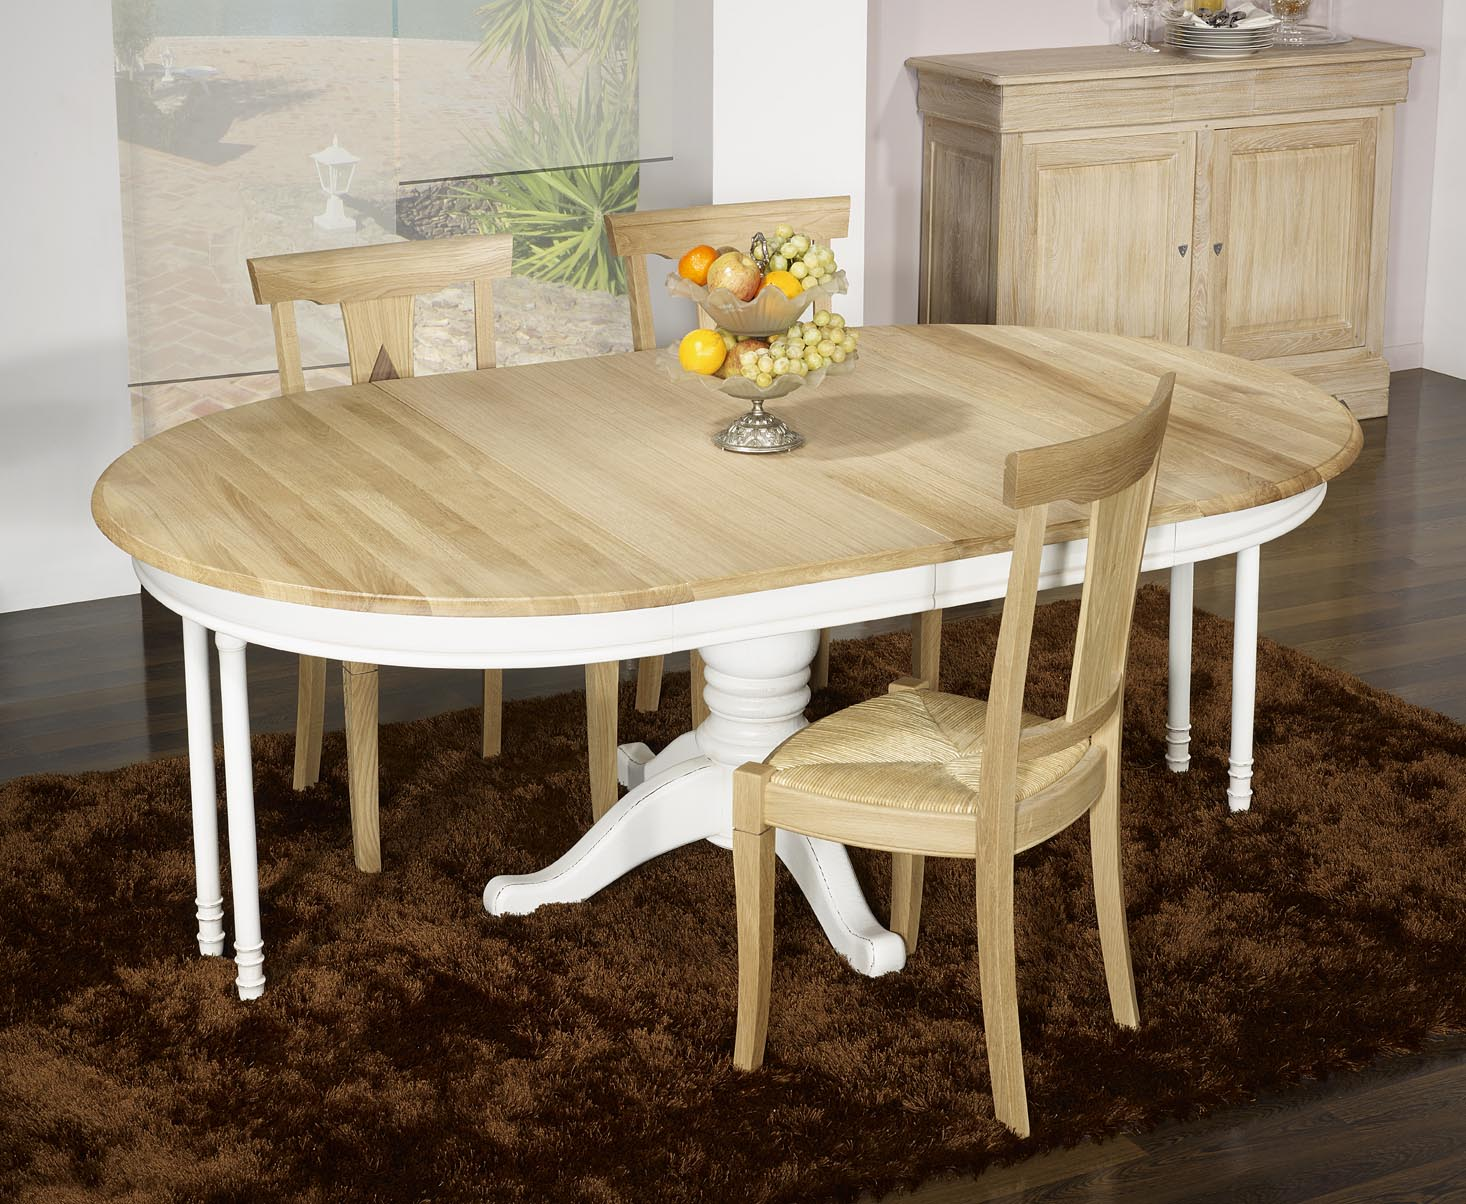 Meuble en chne table ronde pied central ralise en chne - Table ronde 120 pied central ...